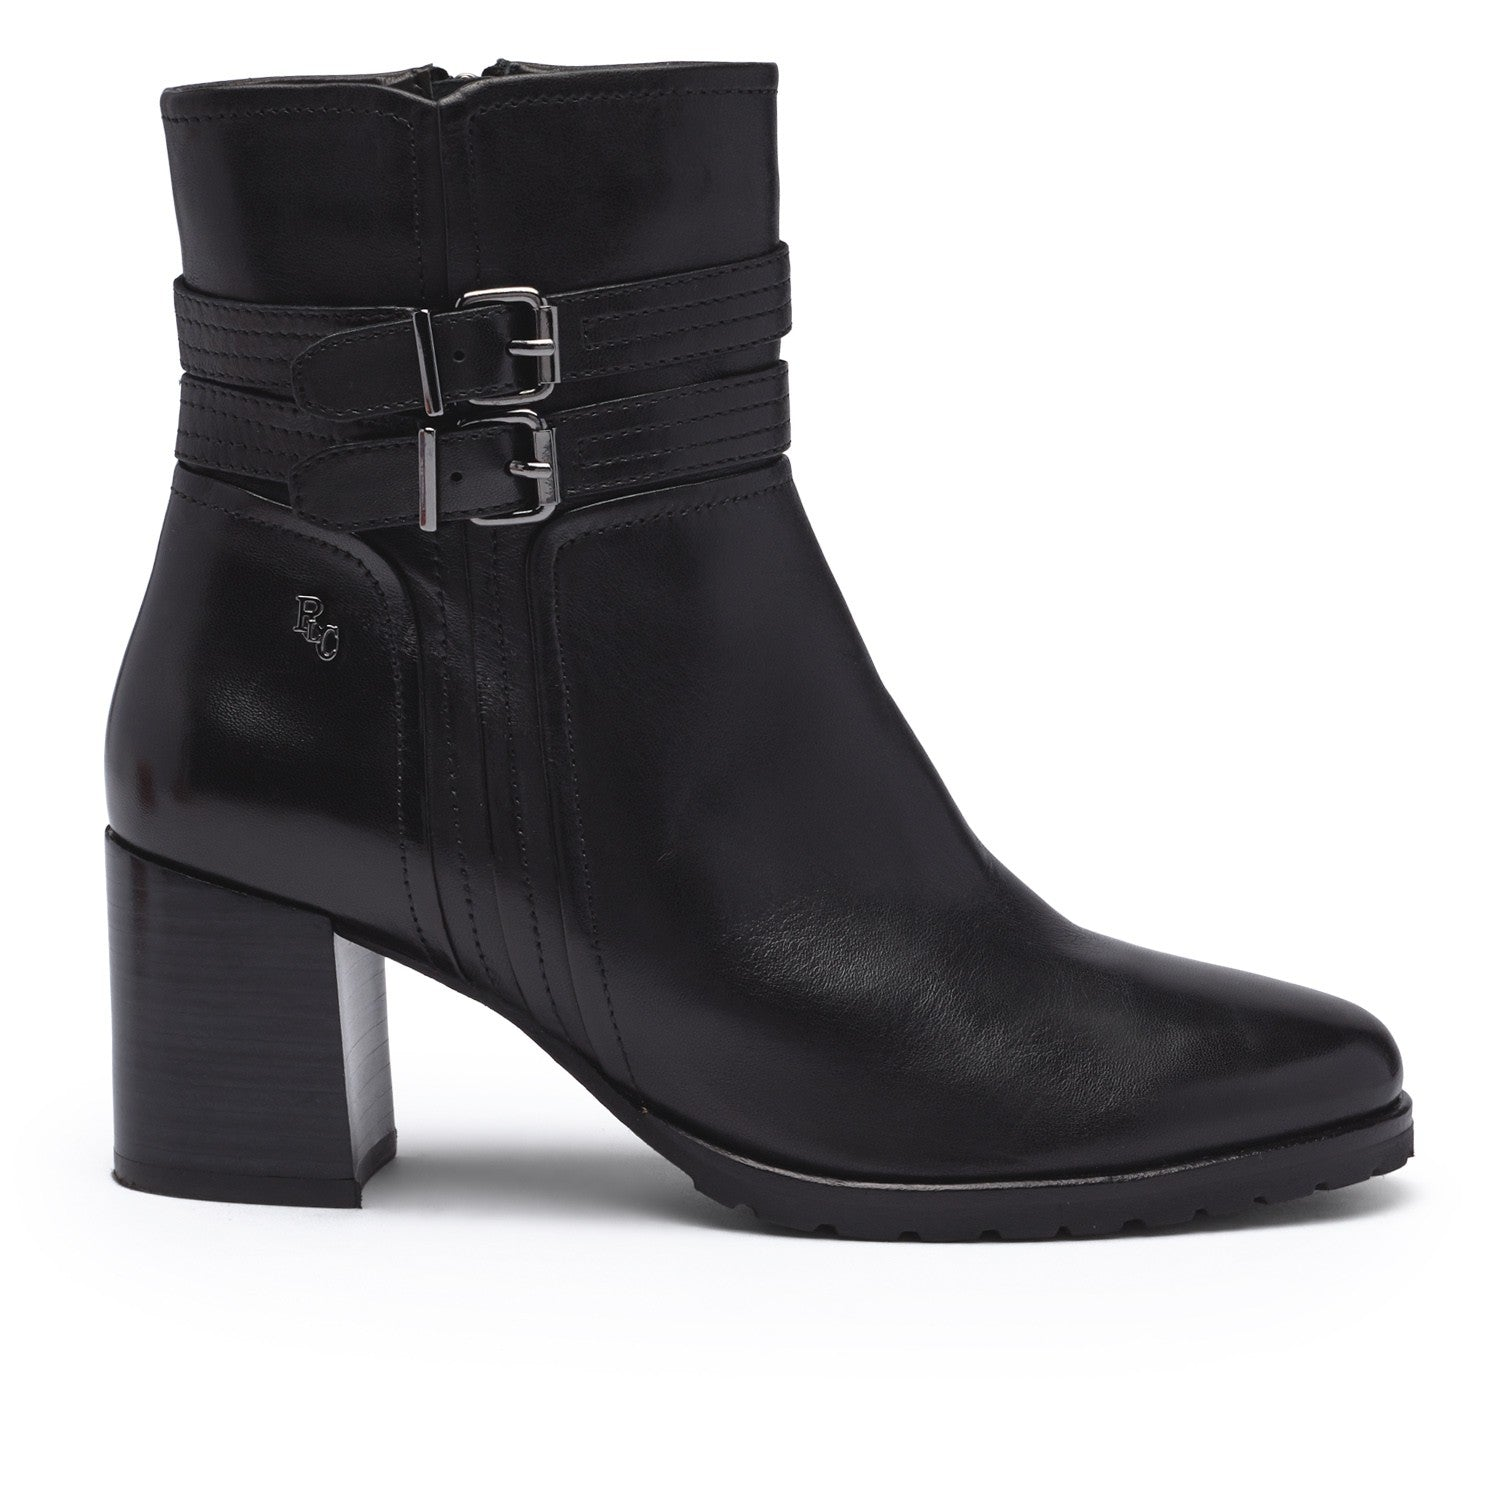 Regarde Le Ciel Black Tall Ankle Boot